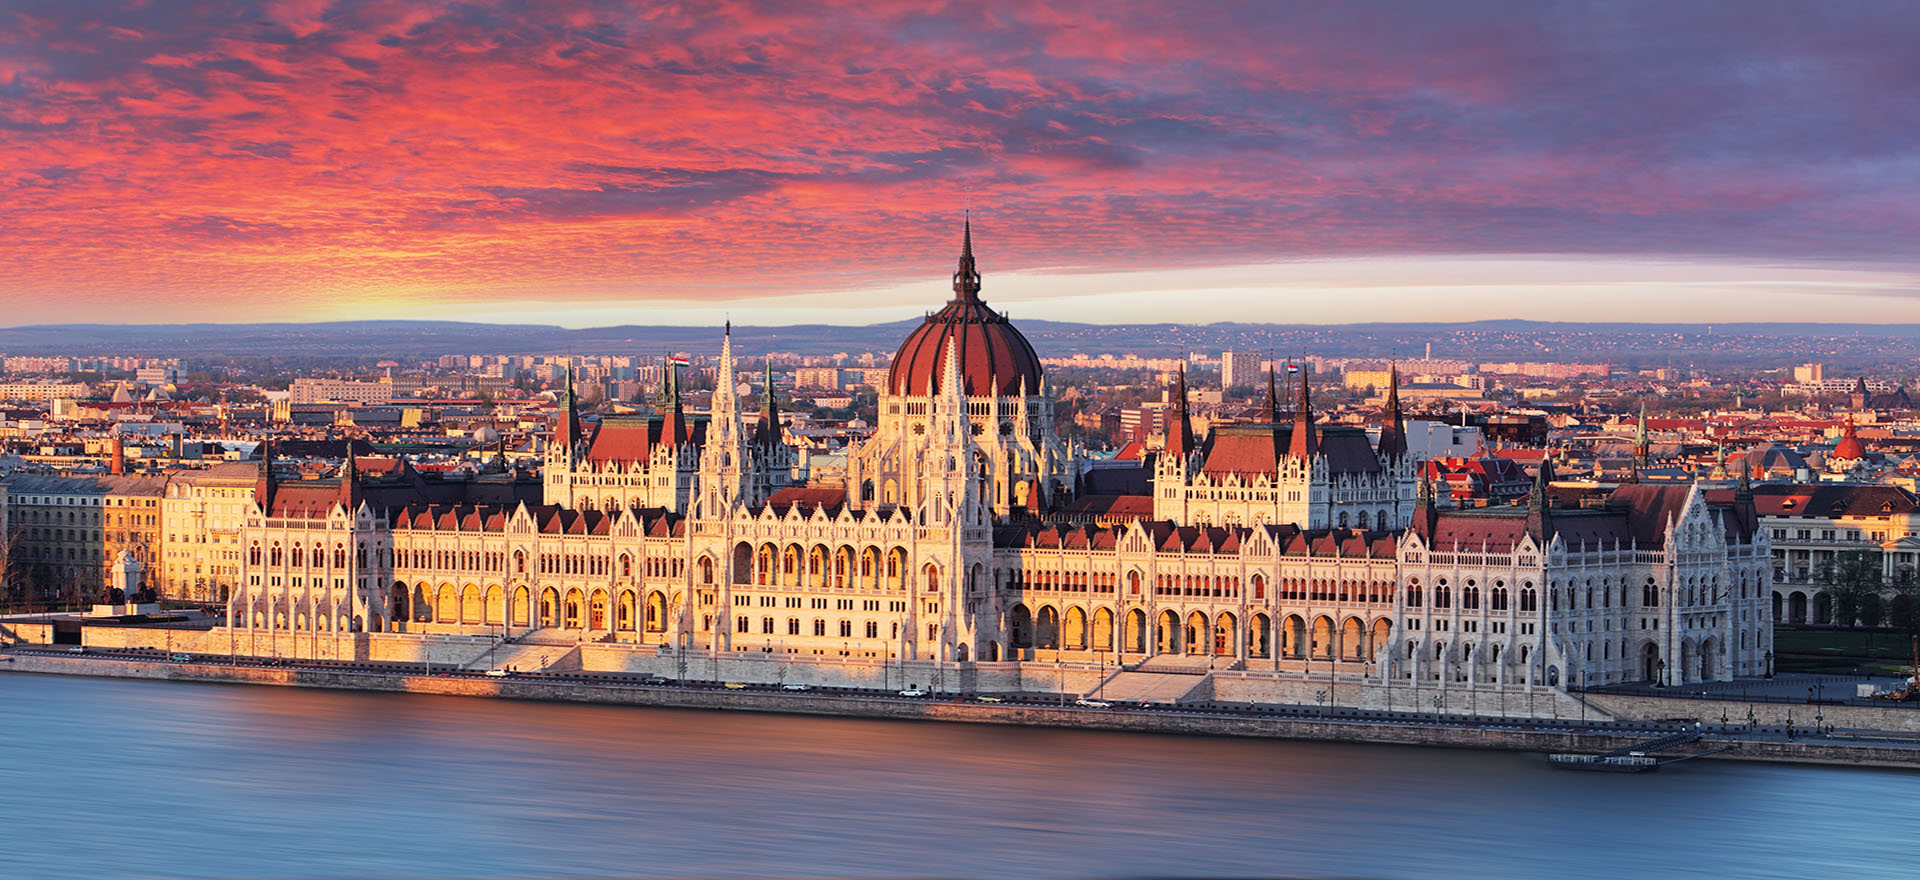 Hungarian parliament building | budapest | hungary | River Cruises in Hungary